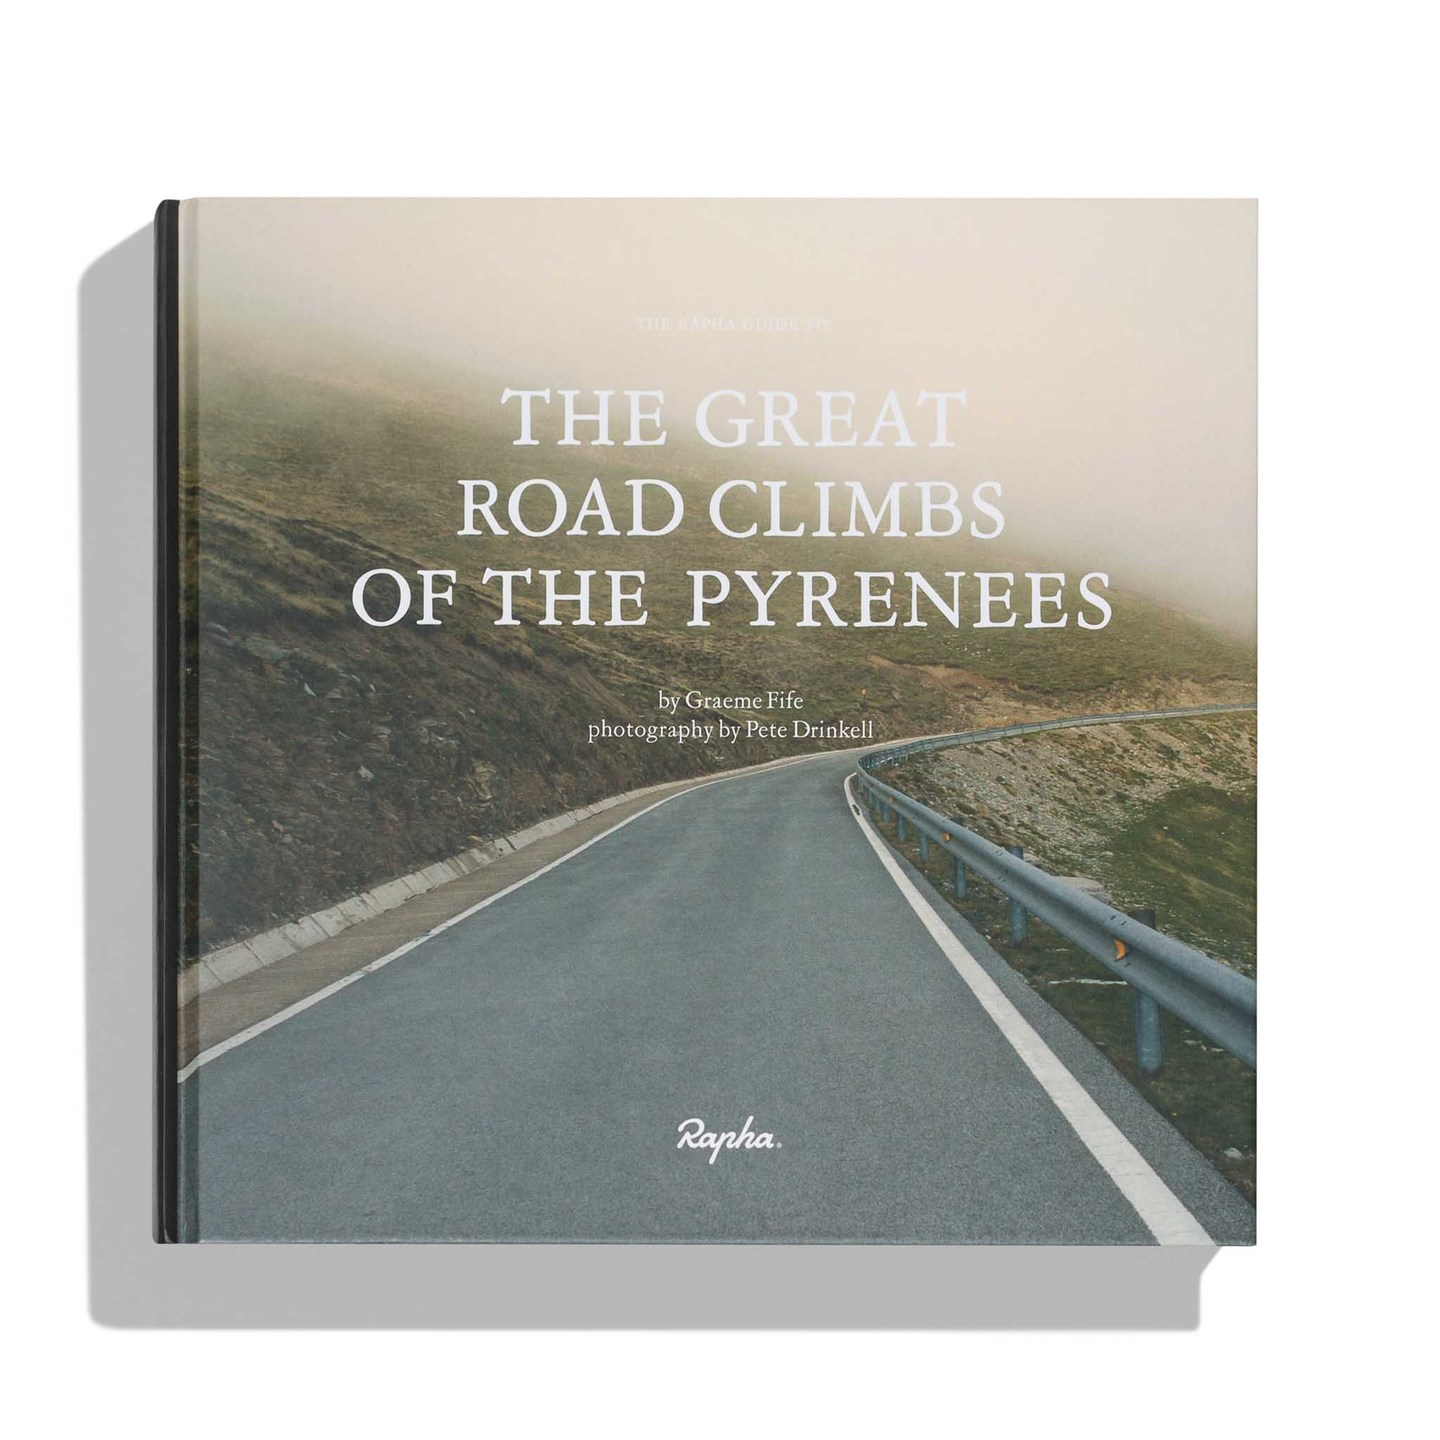 Great Road Climbs of the Pyrenees